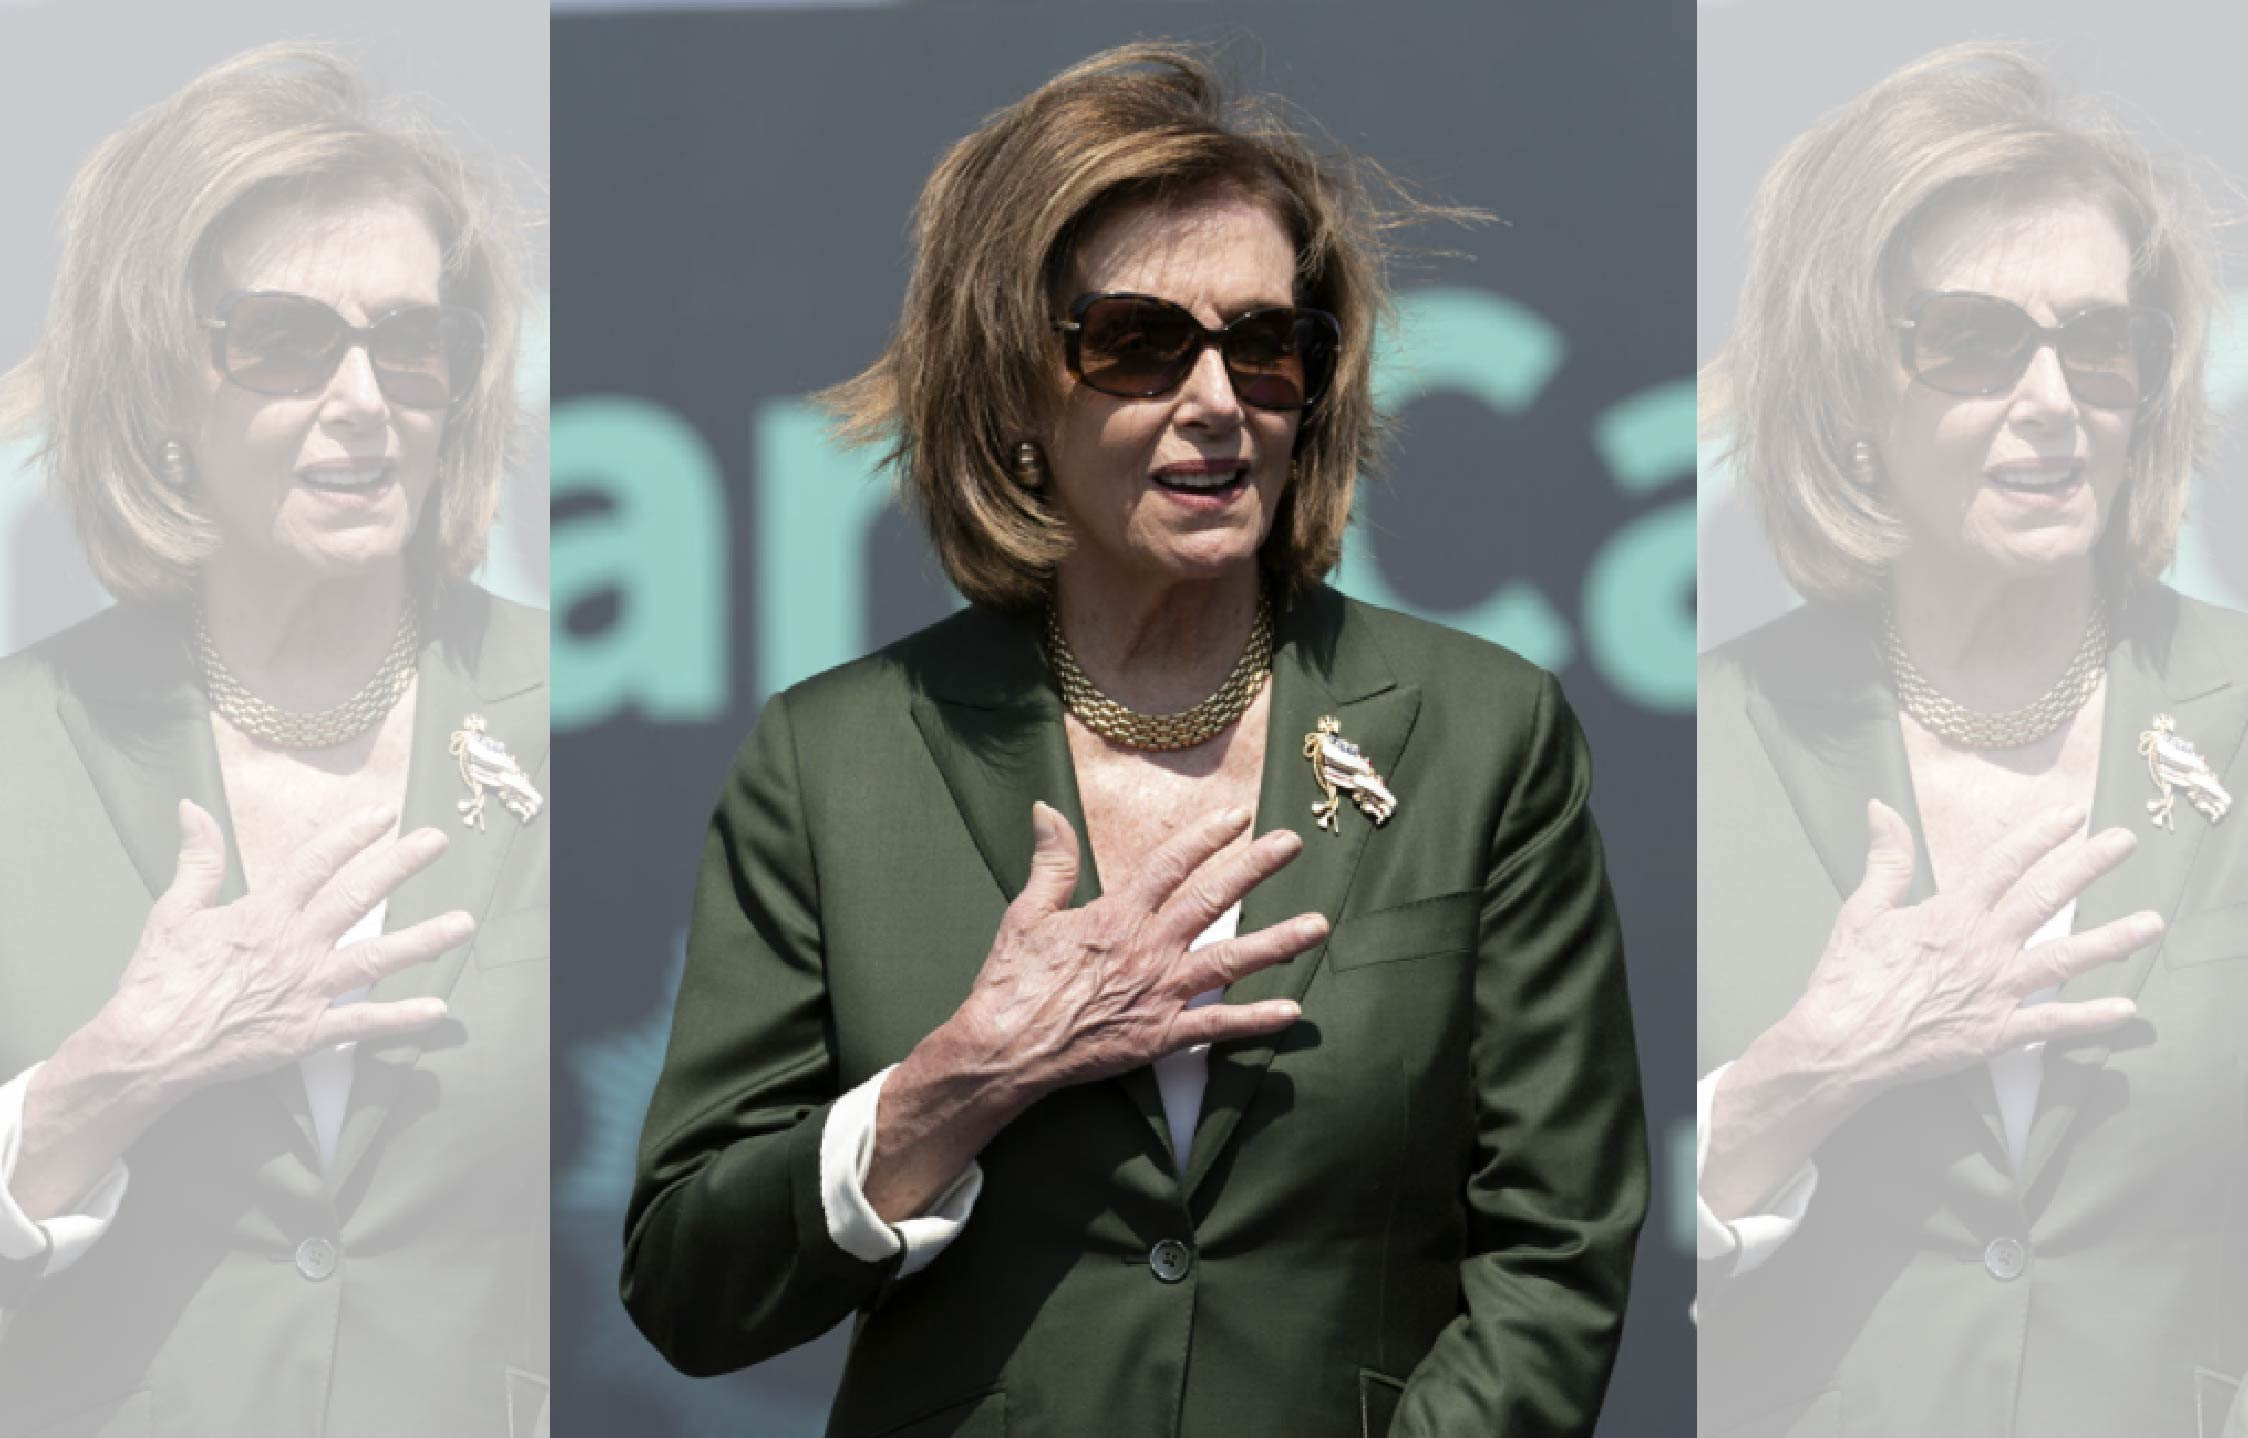 The Good People of Rome Just Heckled and Mocked Pelosi Right Outta Town